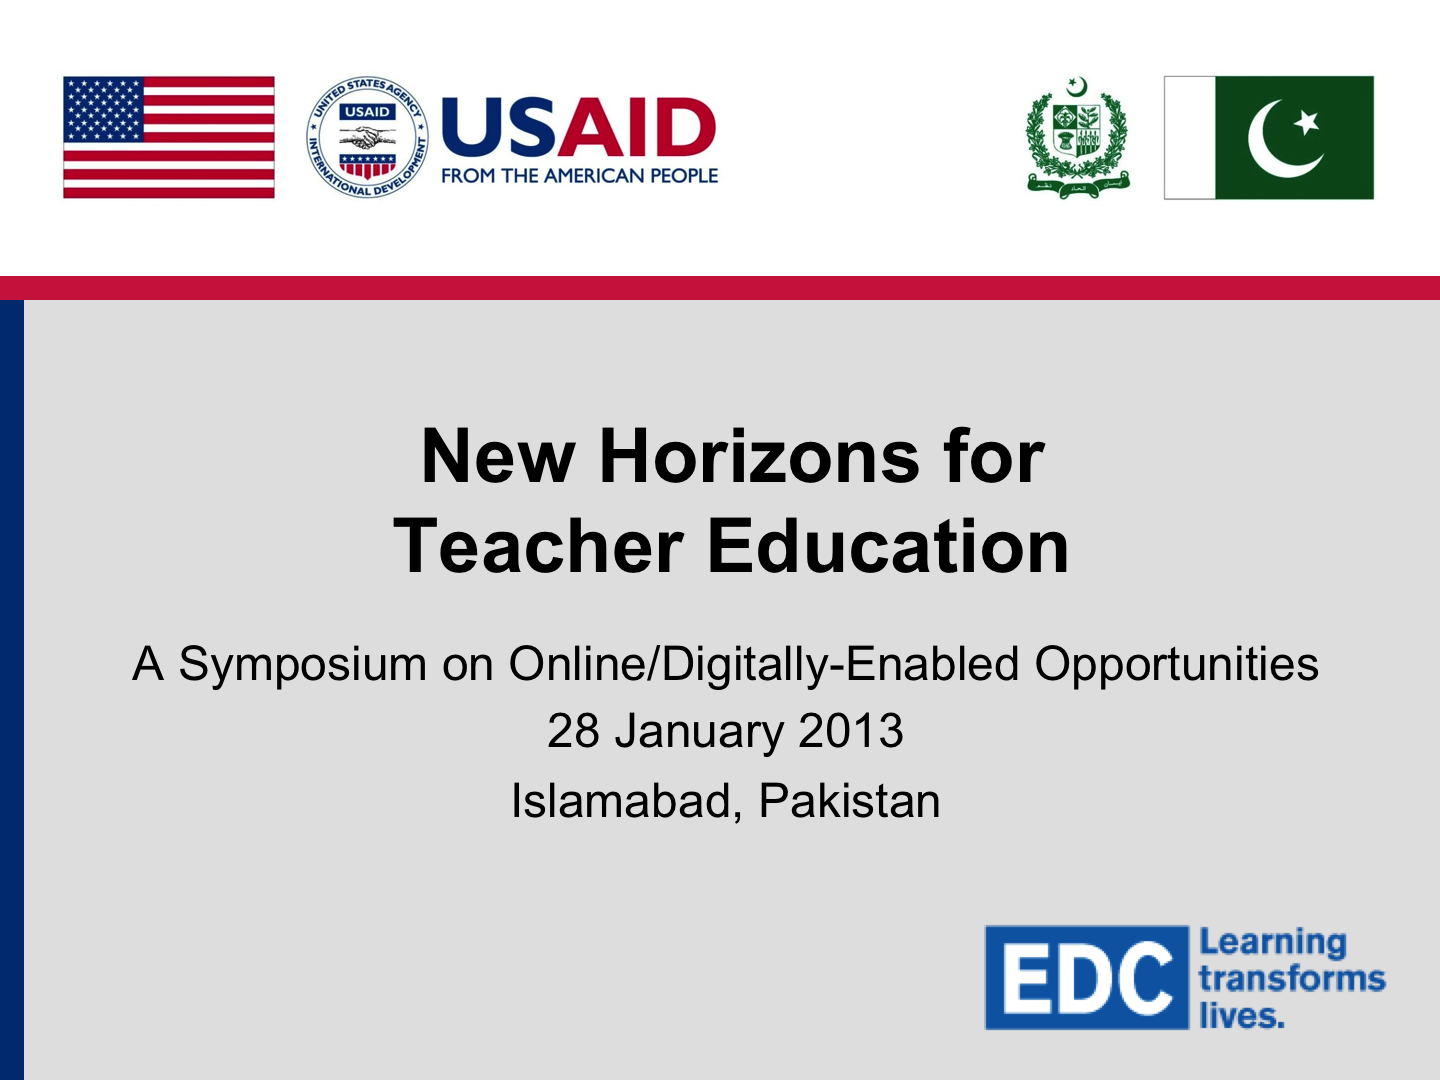 EDC-Pakistan Online Teacher Education